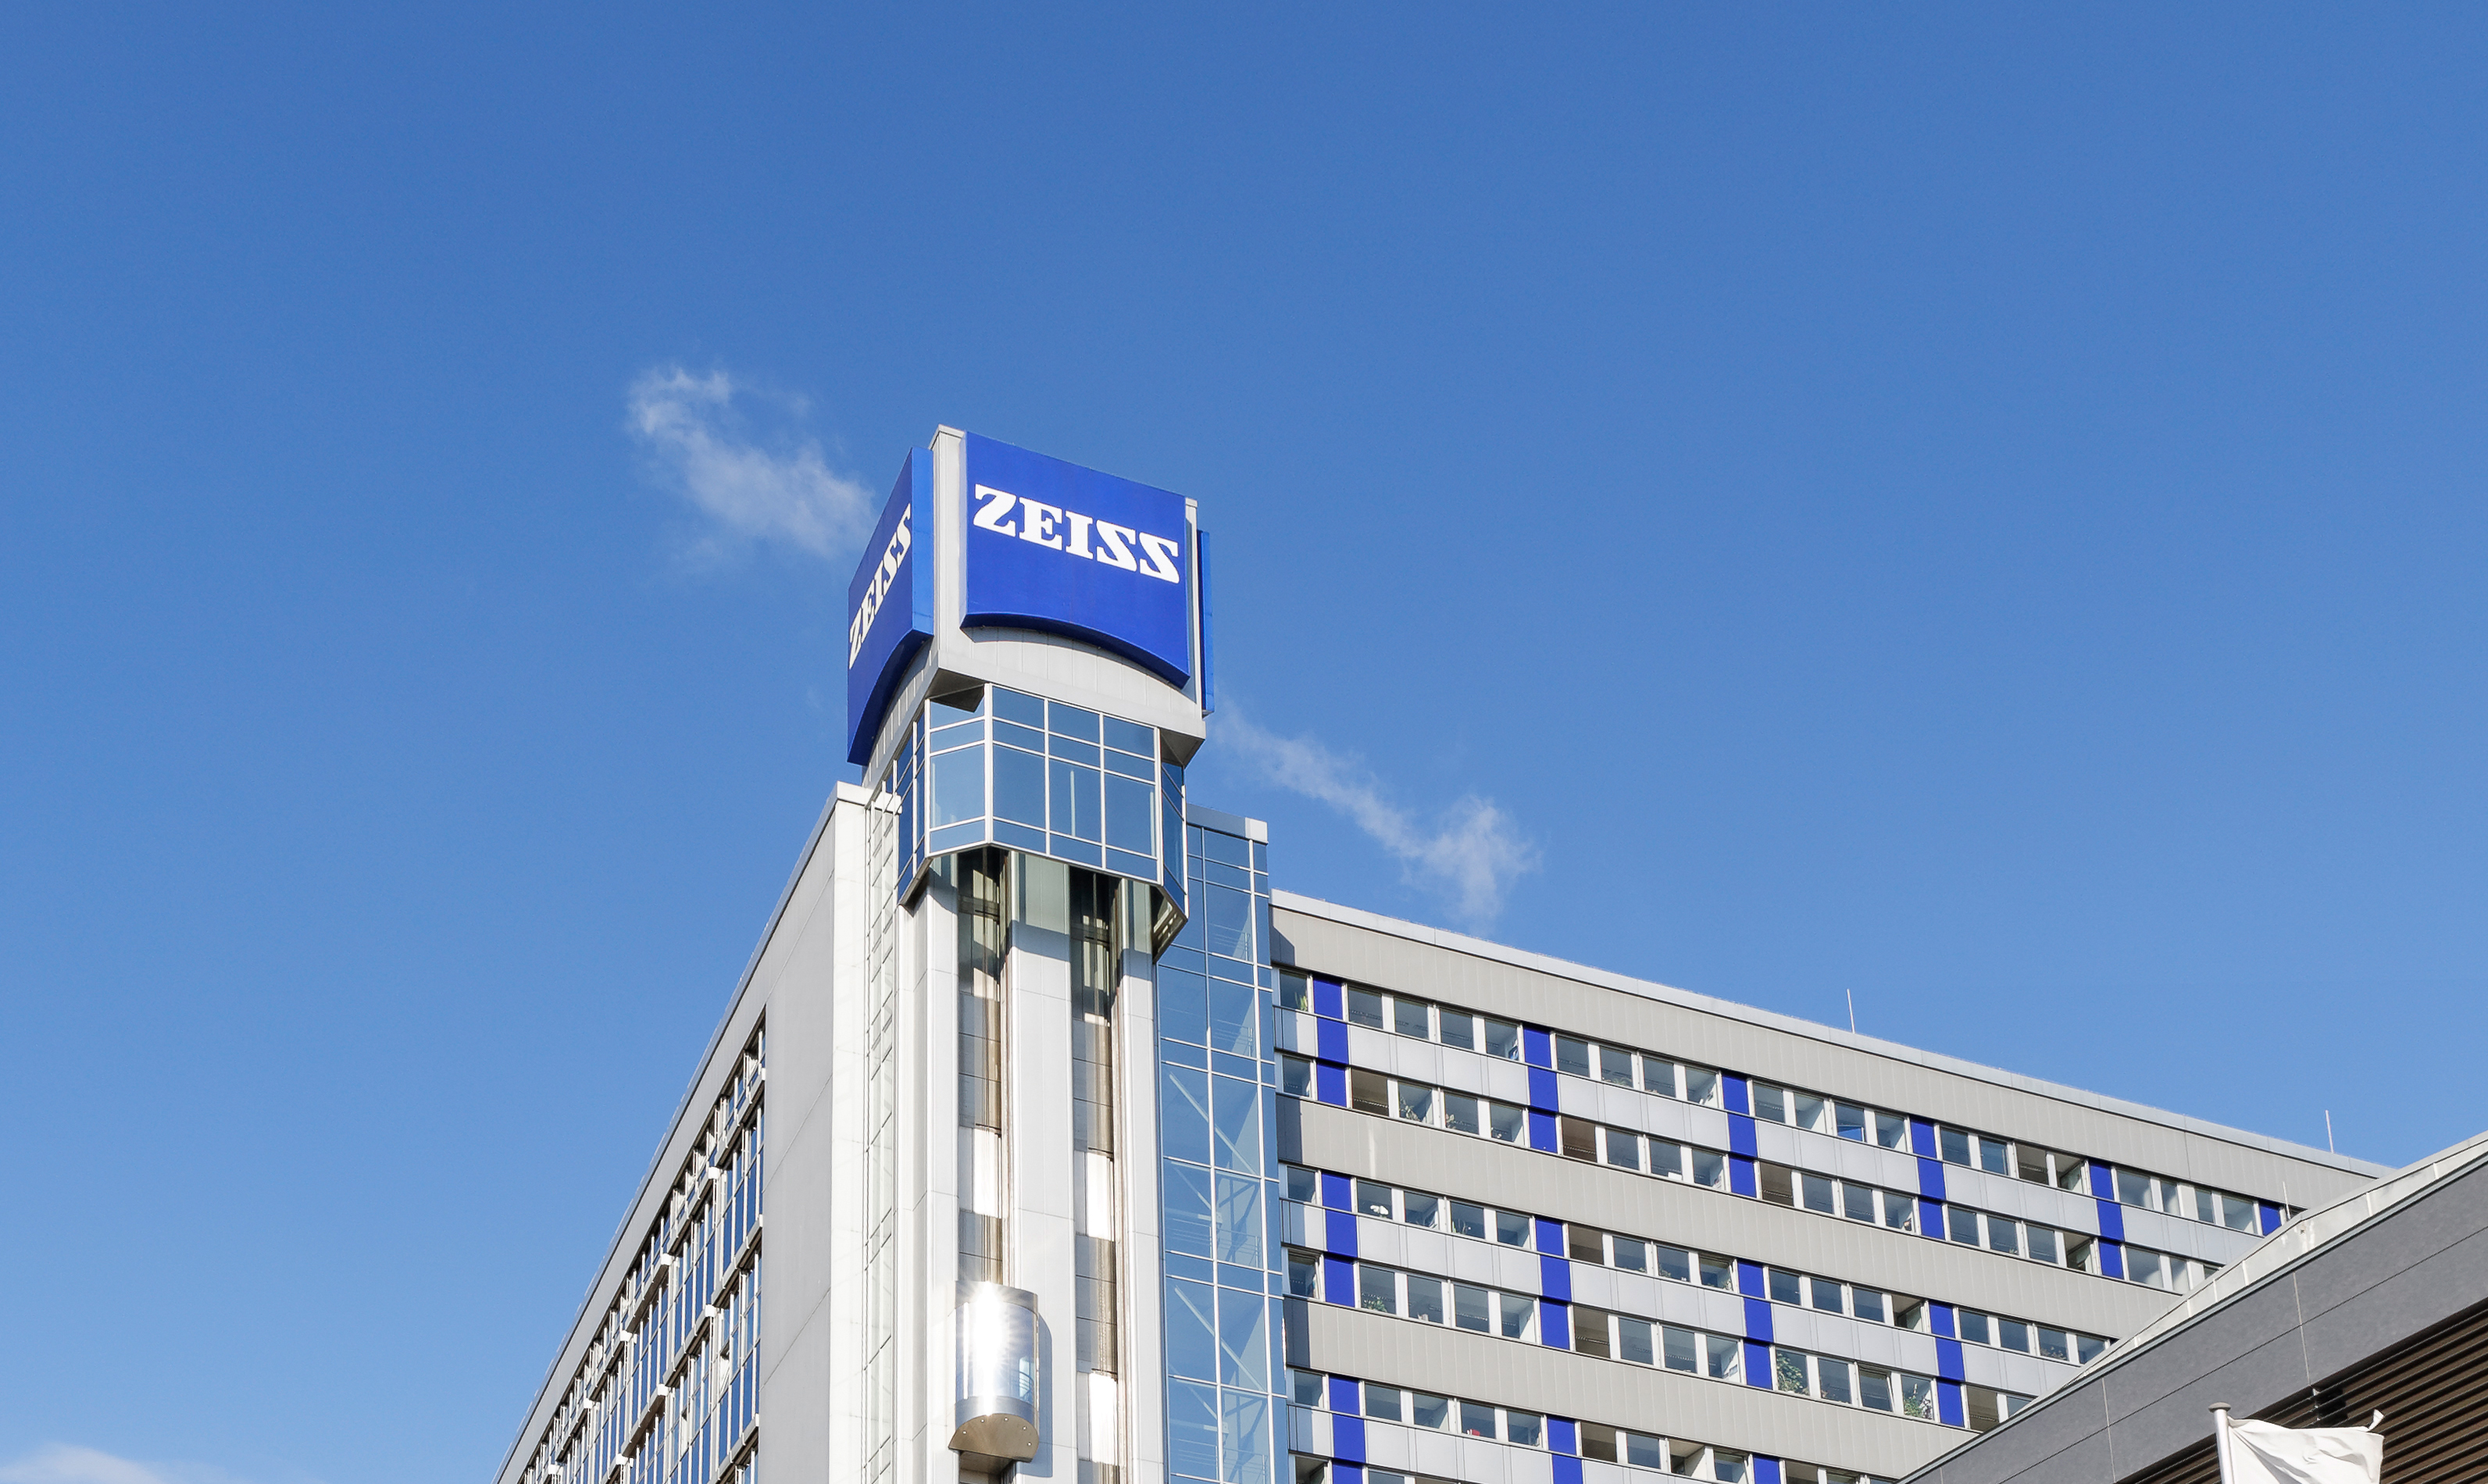 ZEISS headquarter Jena